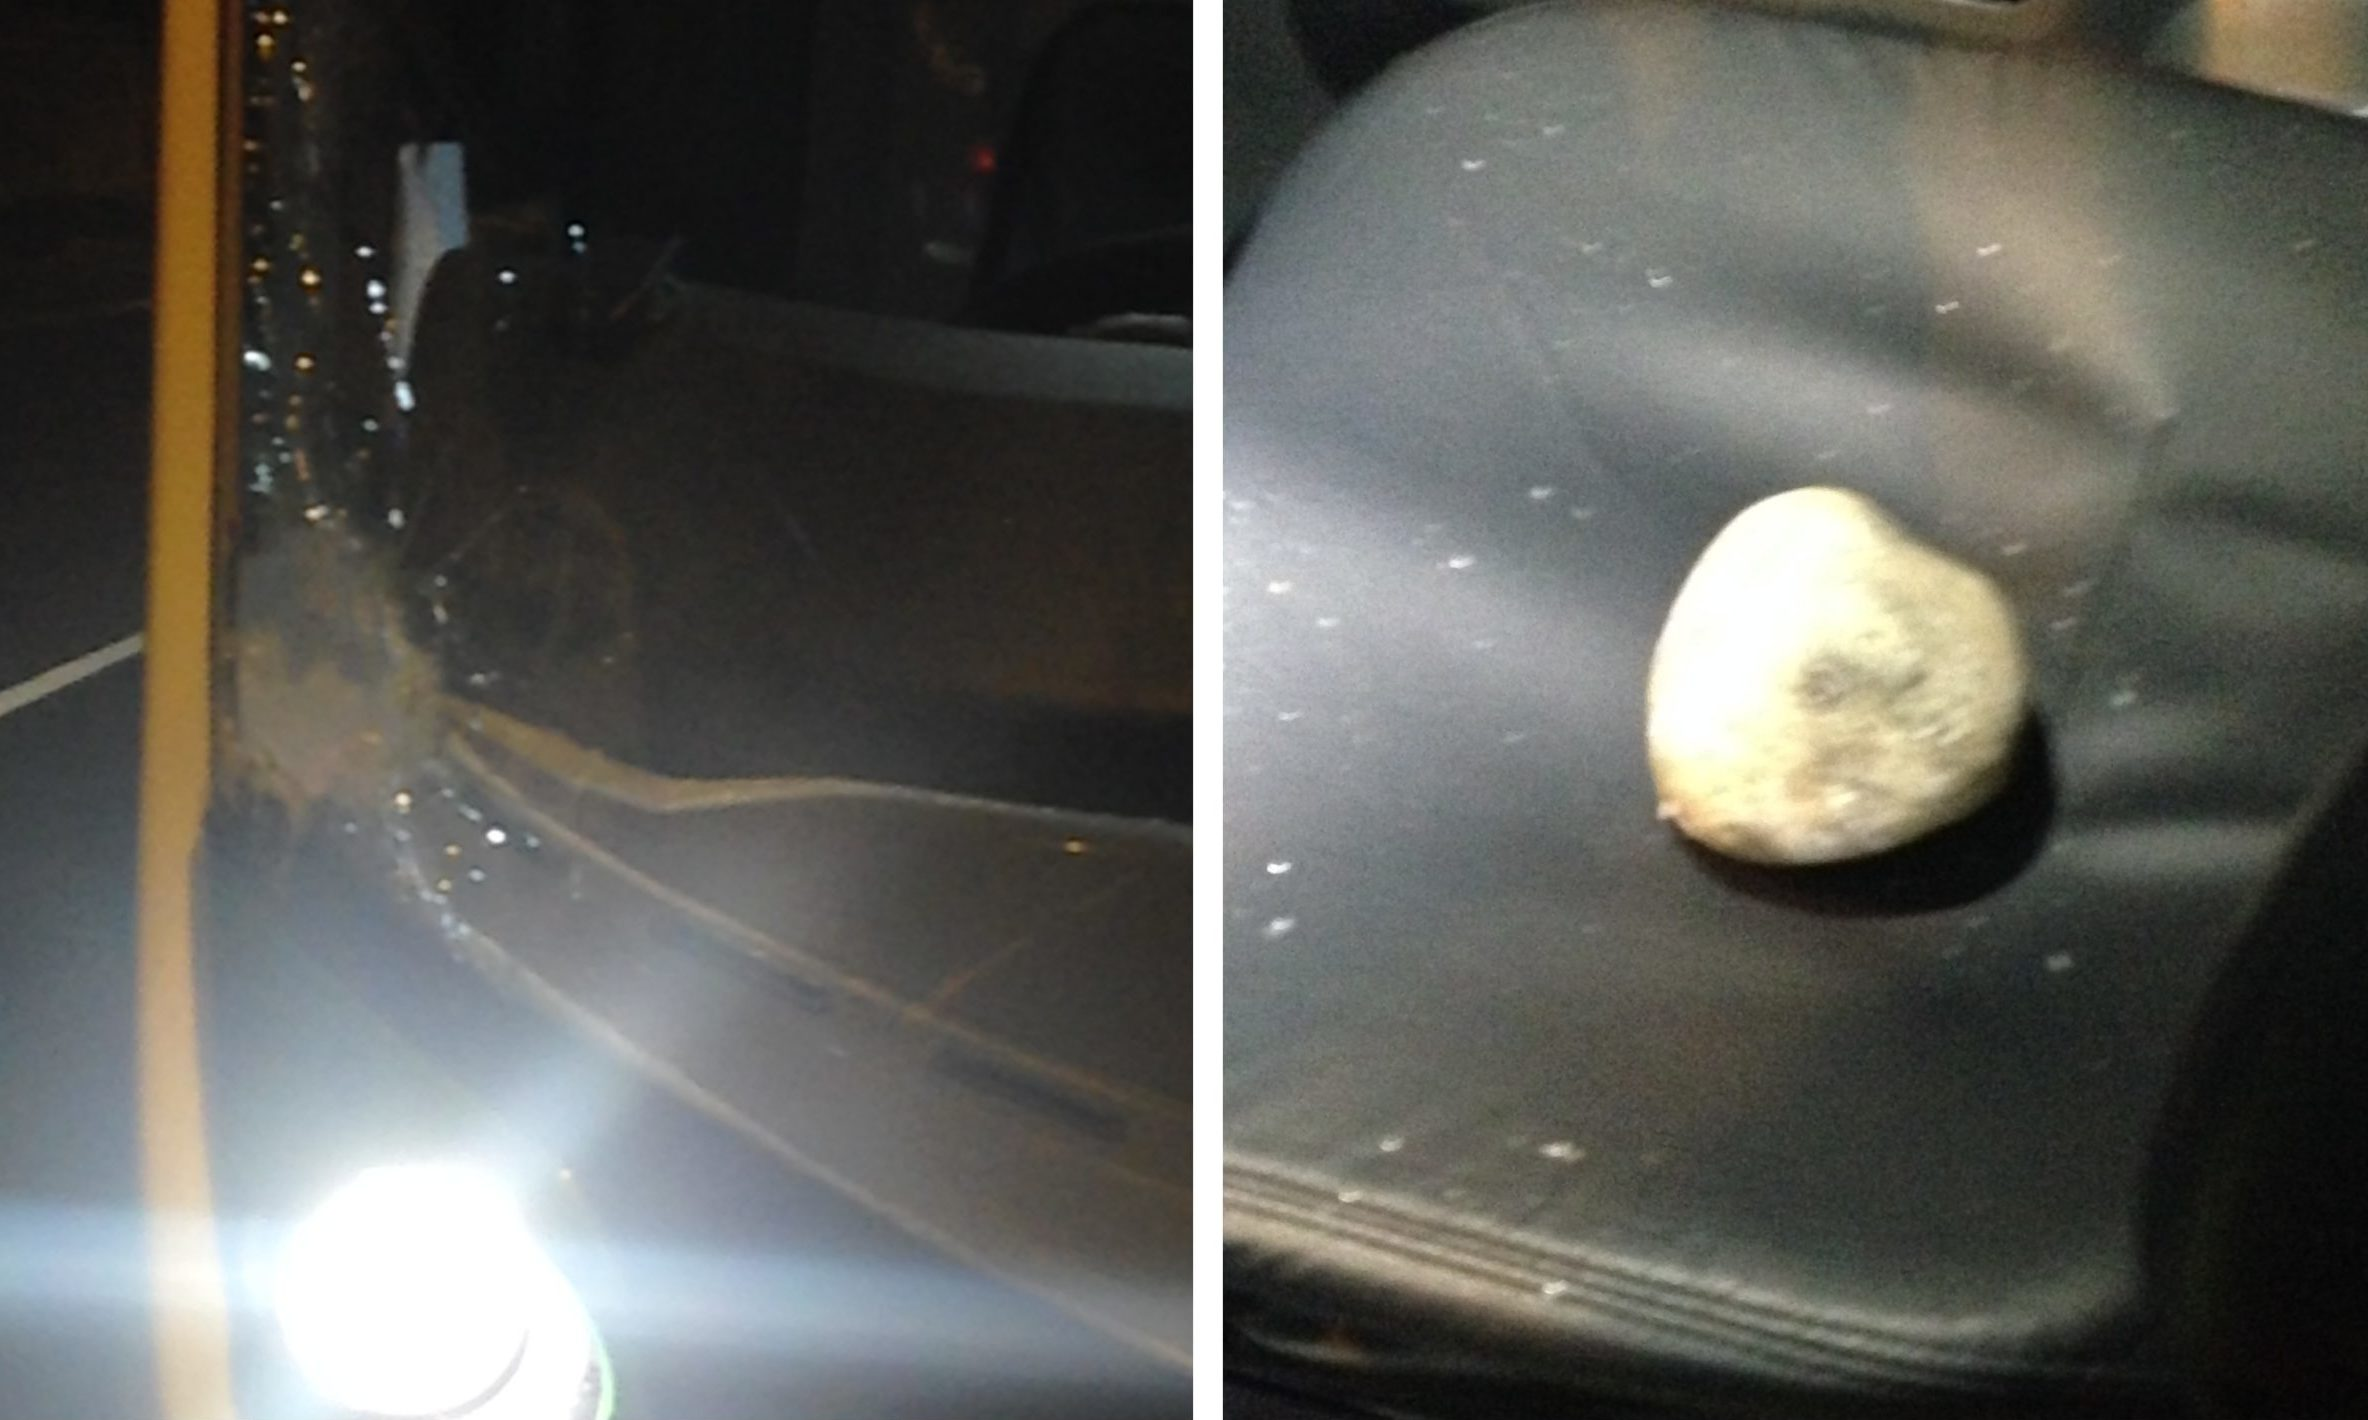 The rock thrown and the damage to the bus windscreen.